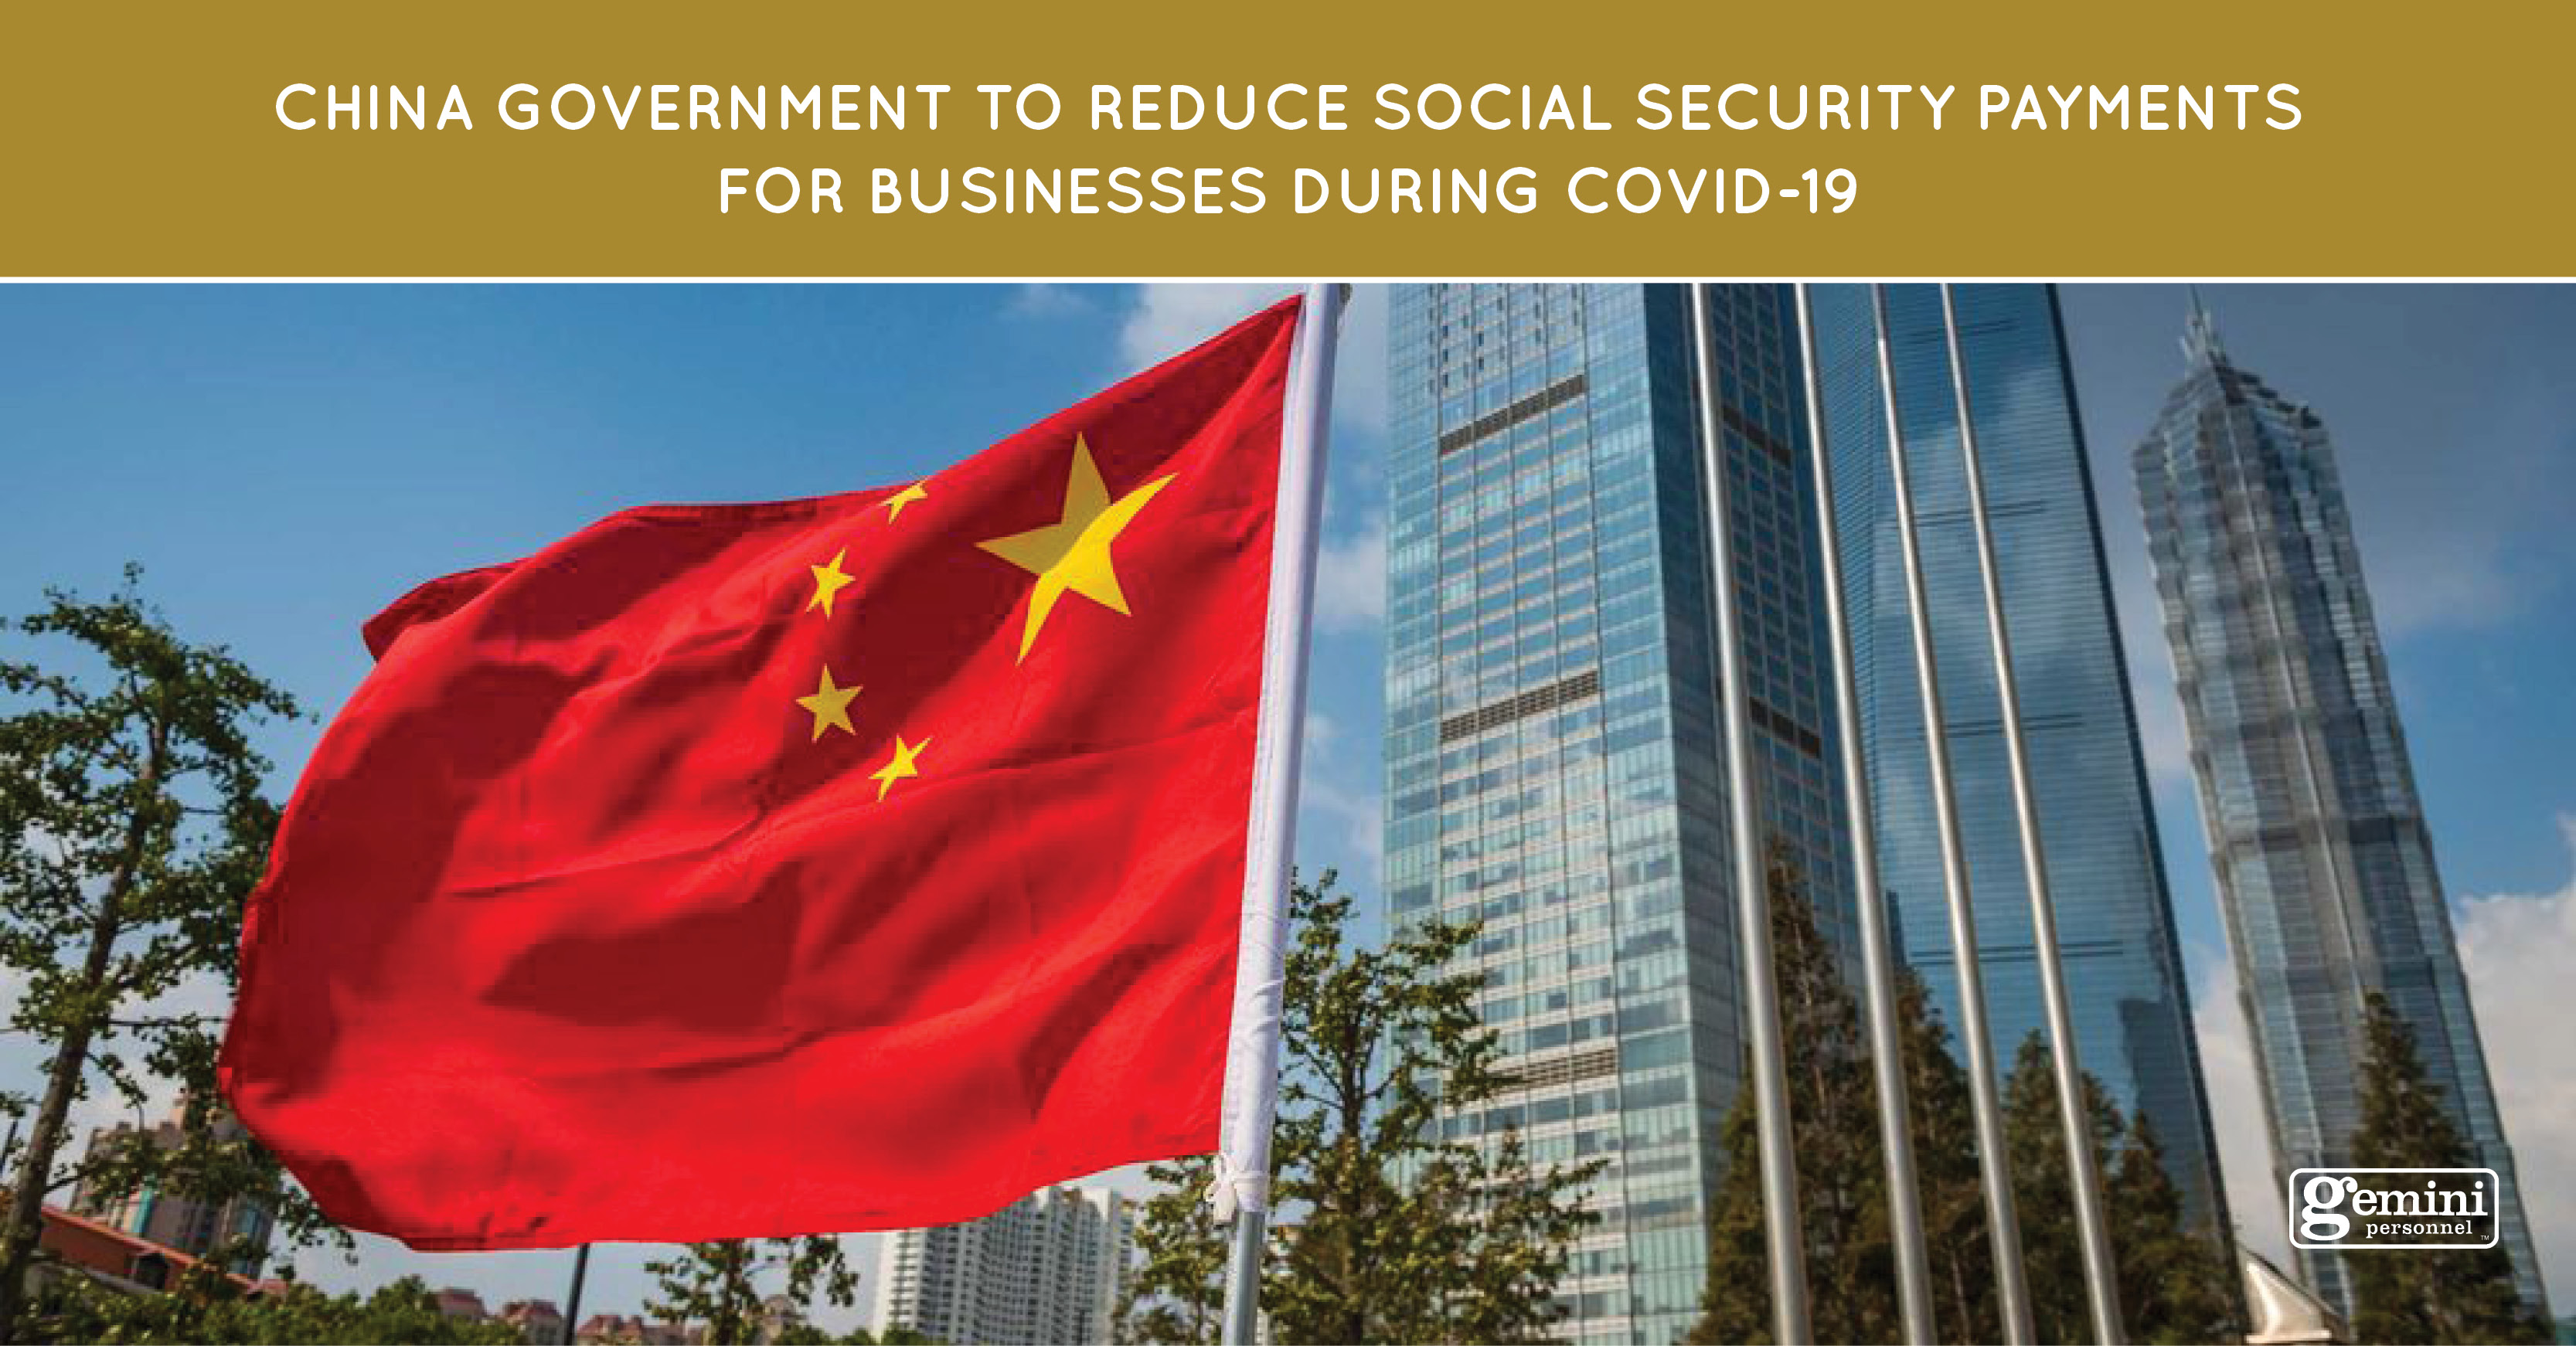 China government to reduce social security payments for businesses during Covid-19